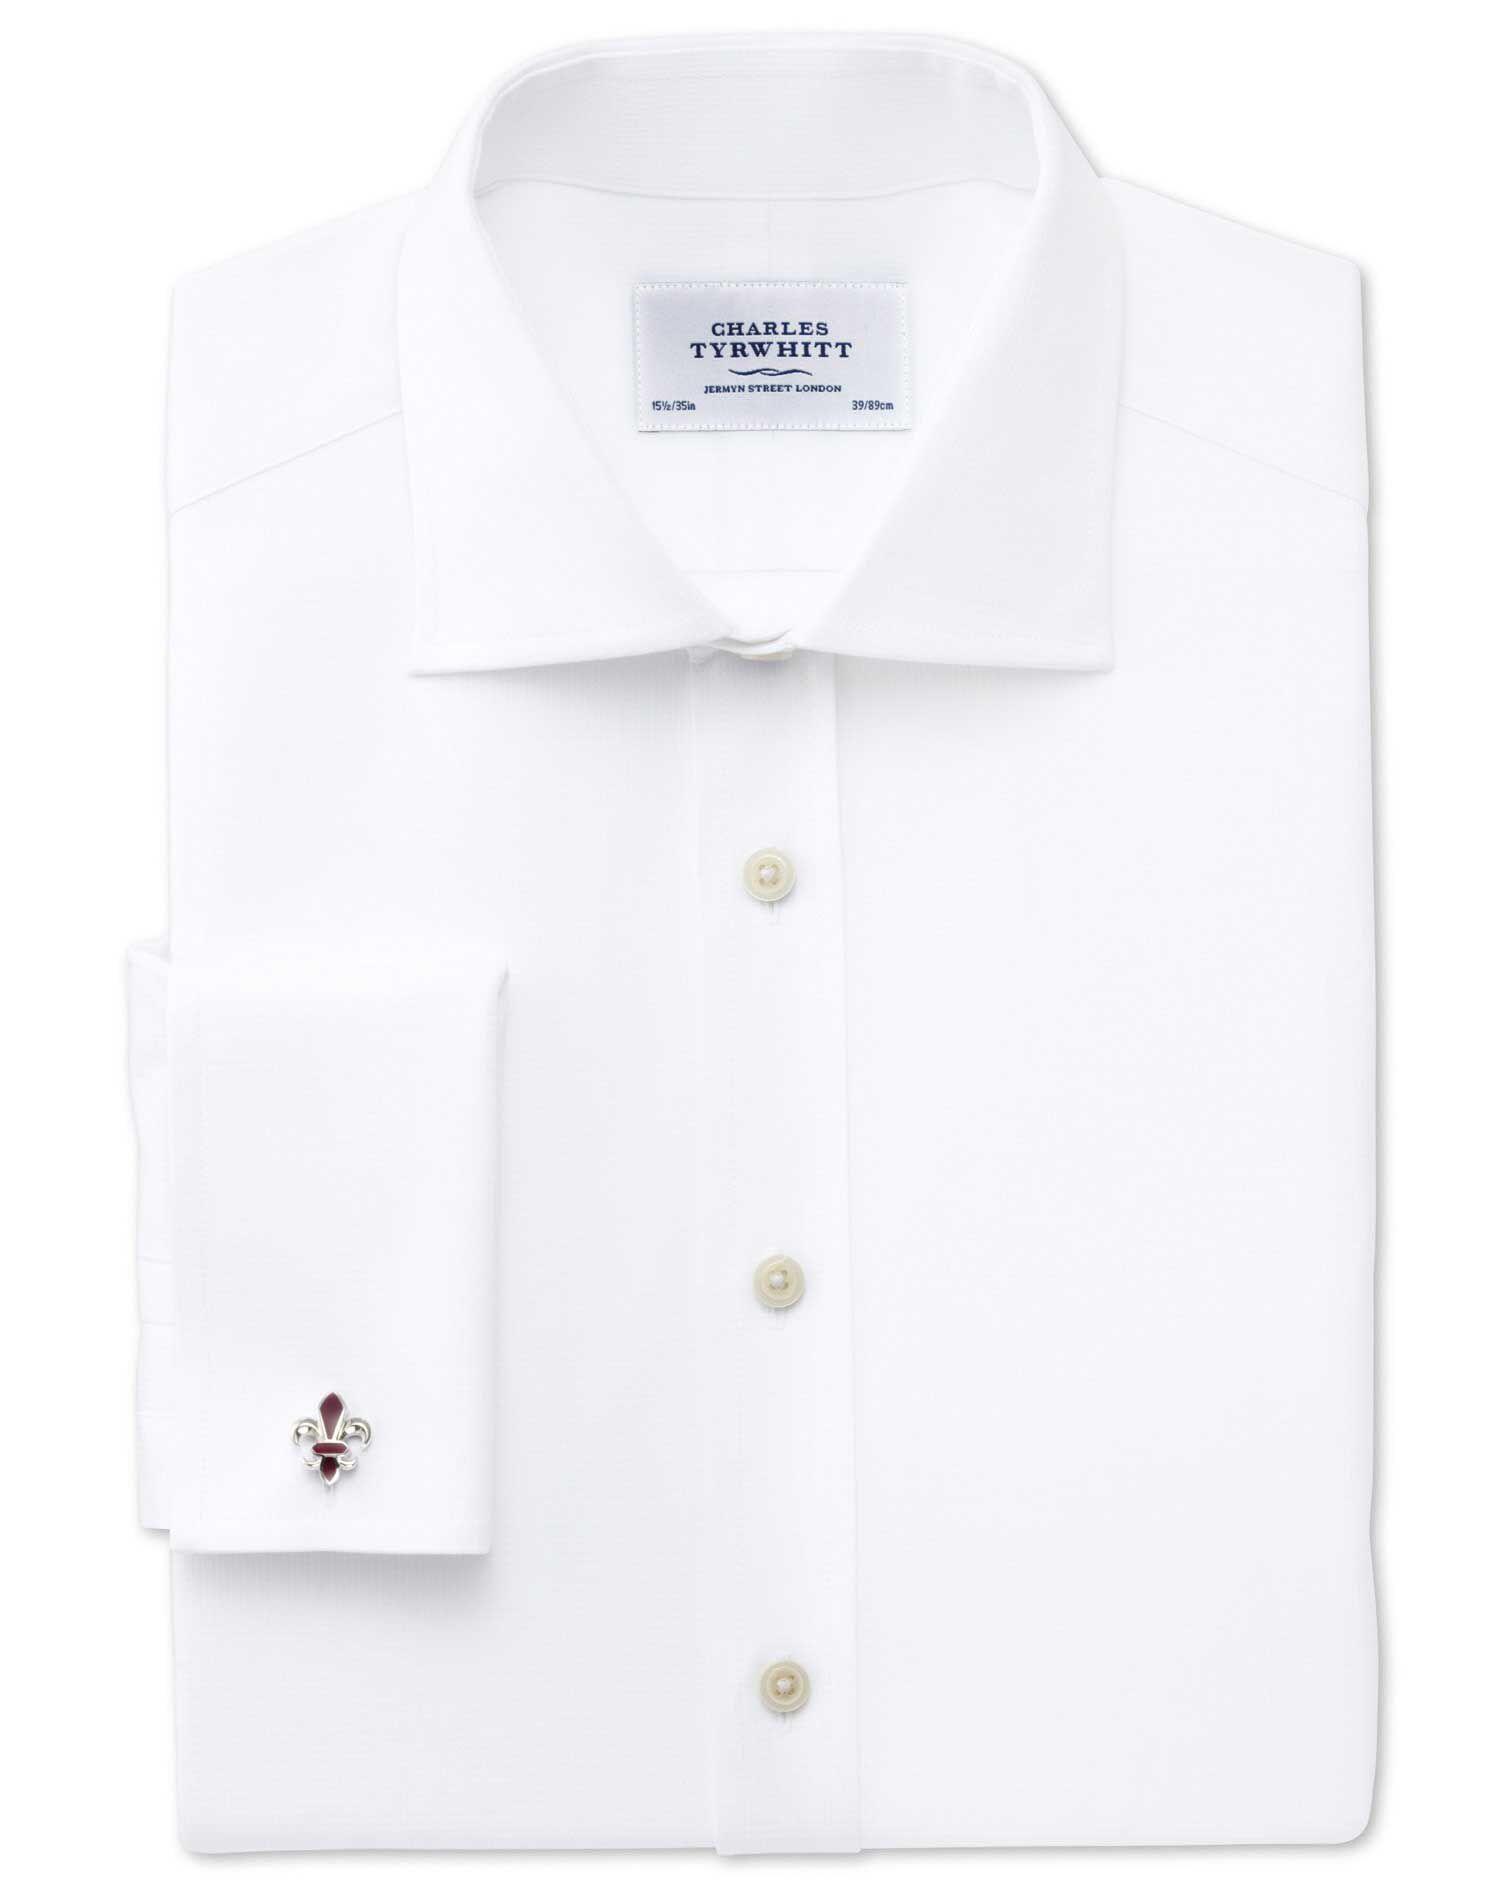 Extra Slim Fit Semi-Cutaway Collar Regency Weave White Egyptian Cotton Formal Shirt Double Cuff Size